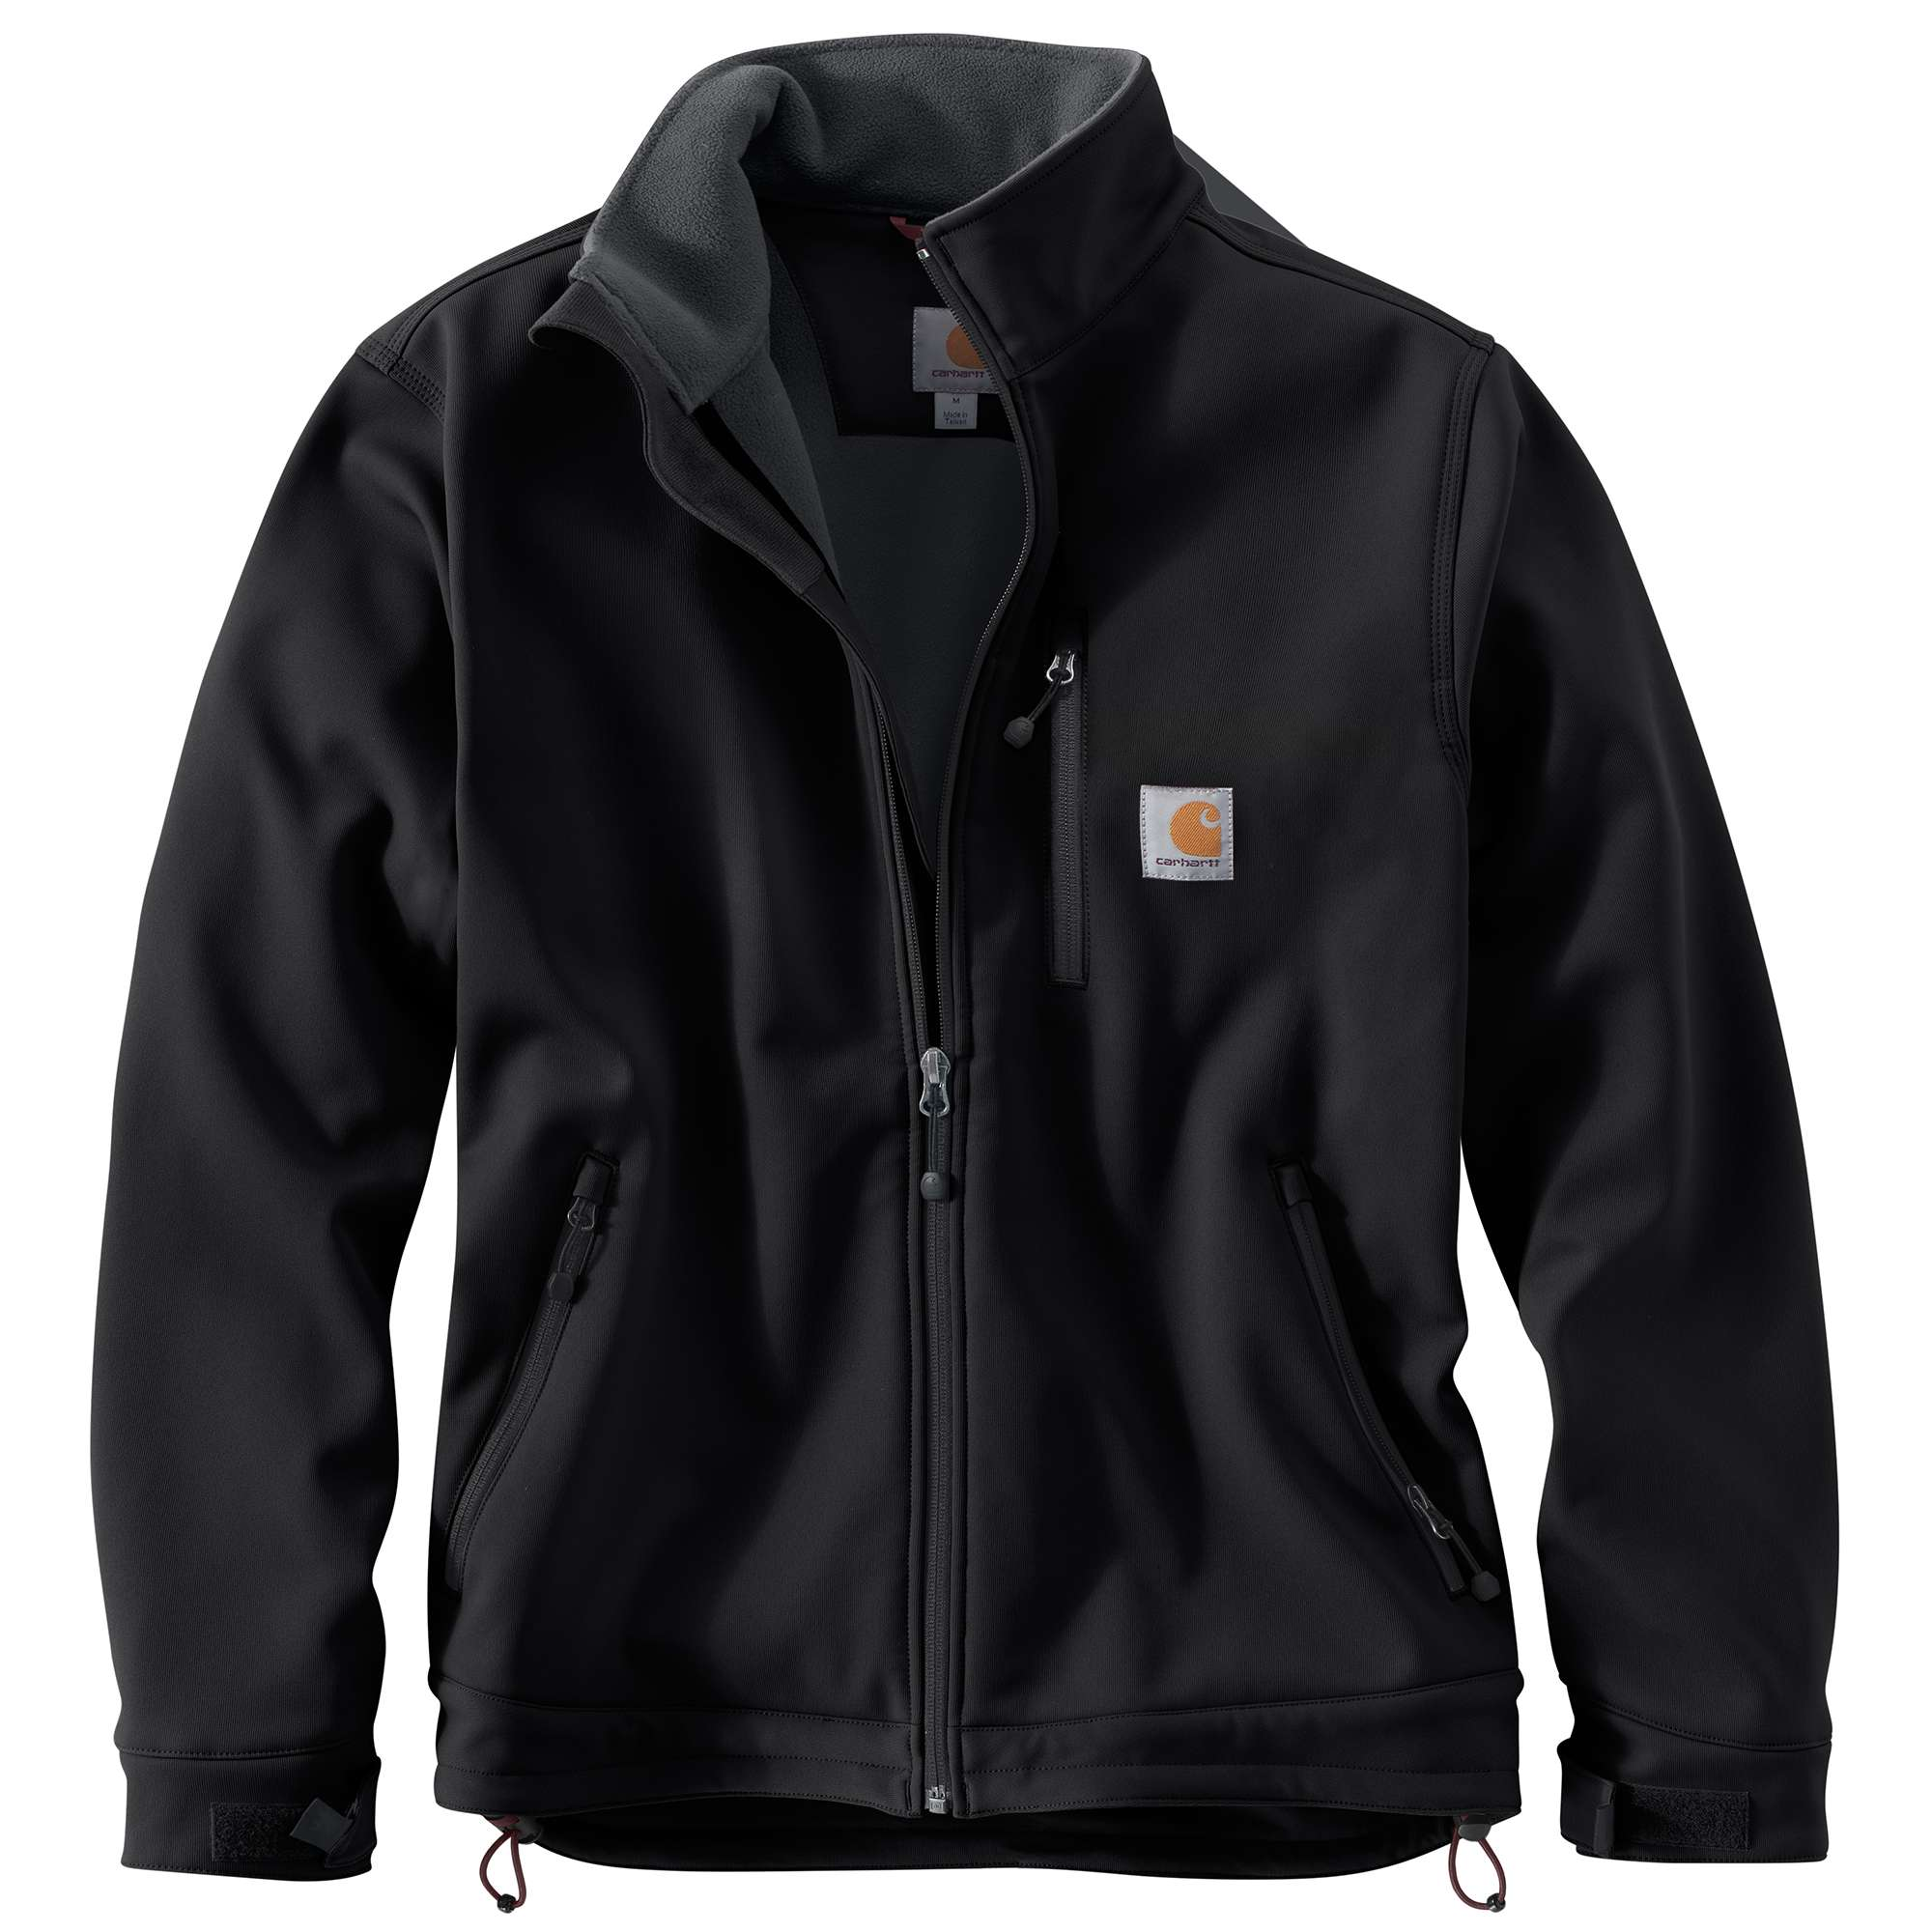 Men's Full Swing Armstrong Active Jacket, Black, swatch